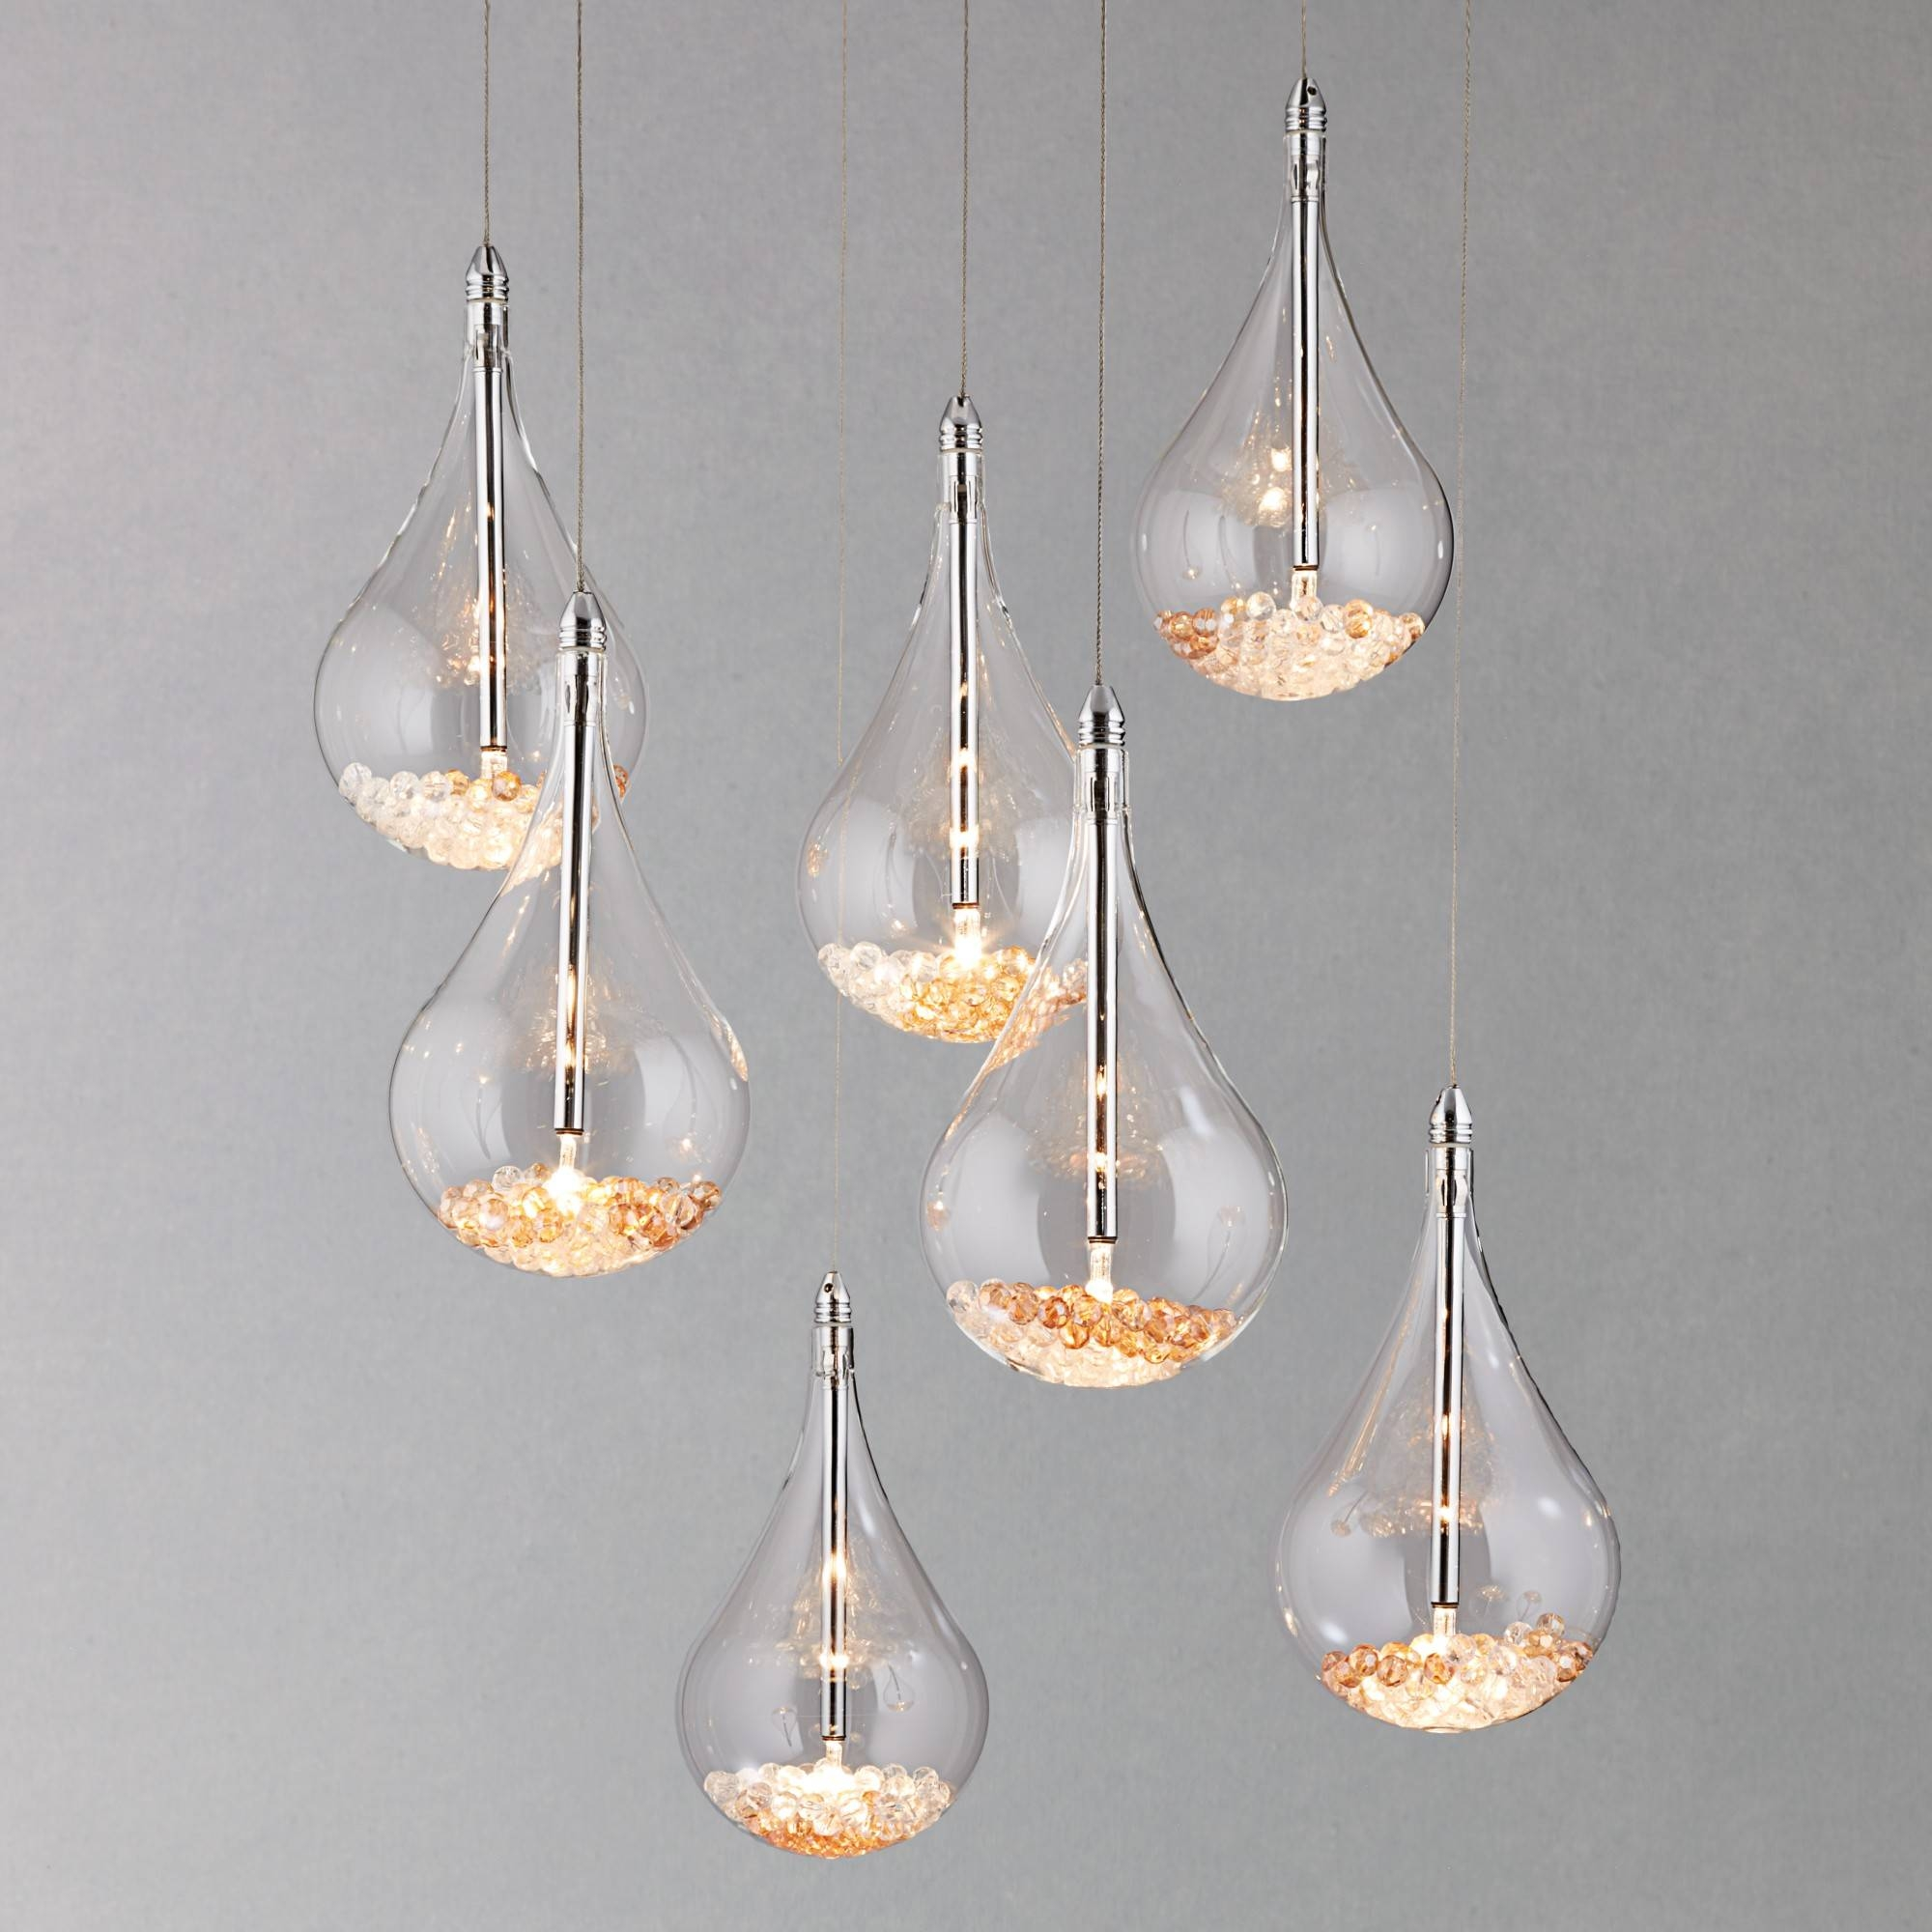 Cluster Lights - Our Pick Of The Best | Ideal Home regarding John Lewis Pendant Lights (Image 3 of 15)